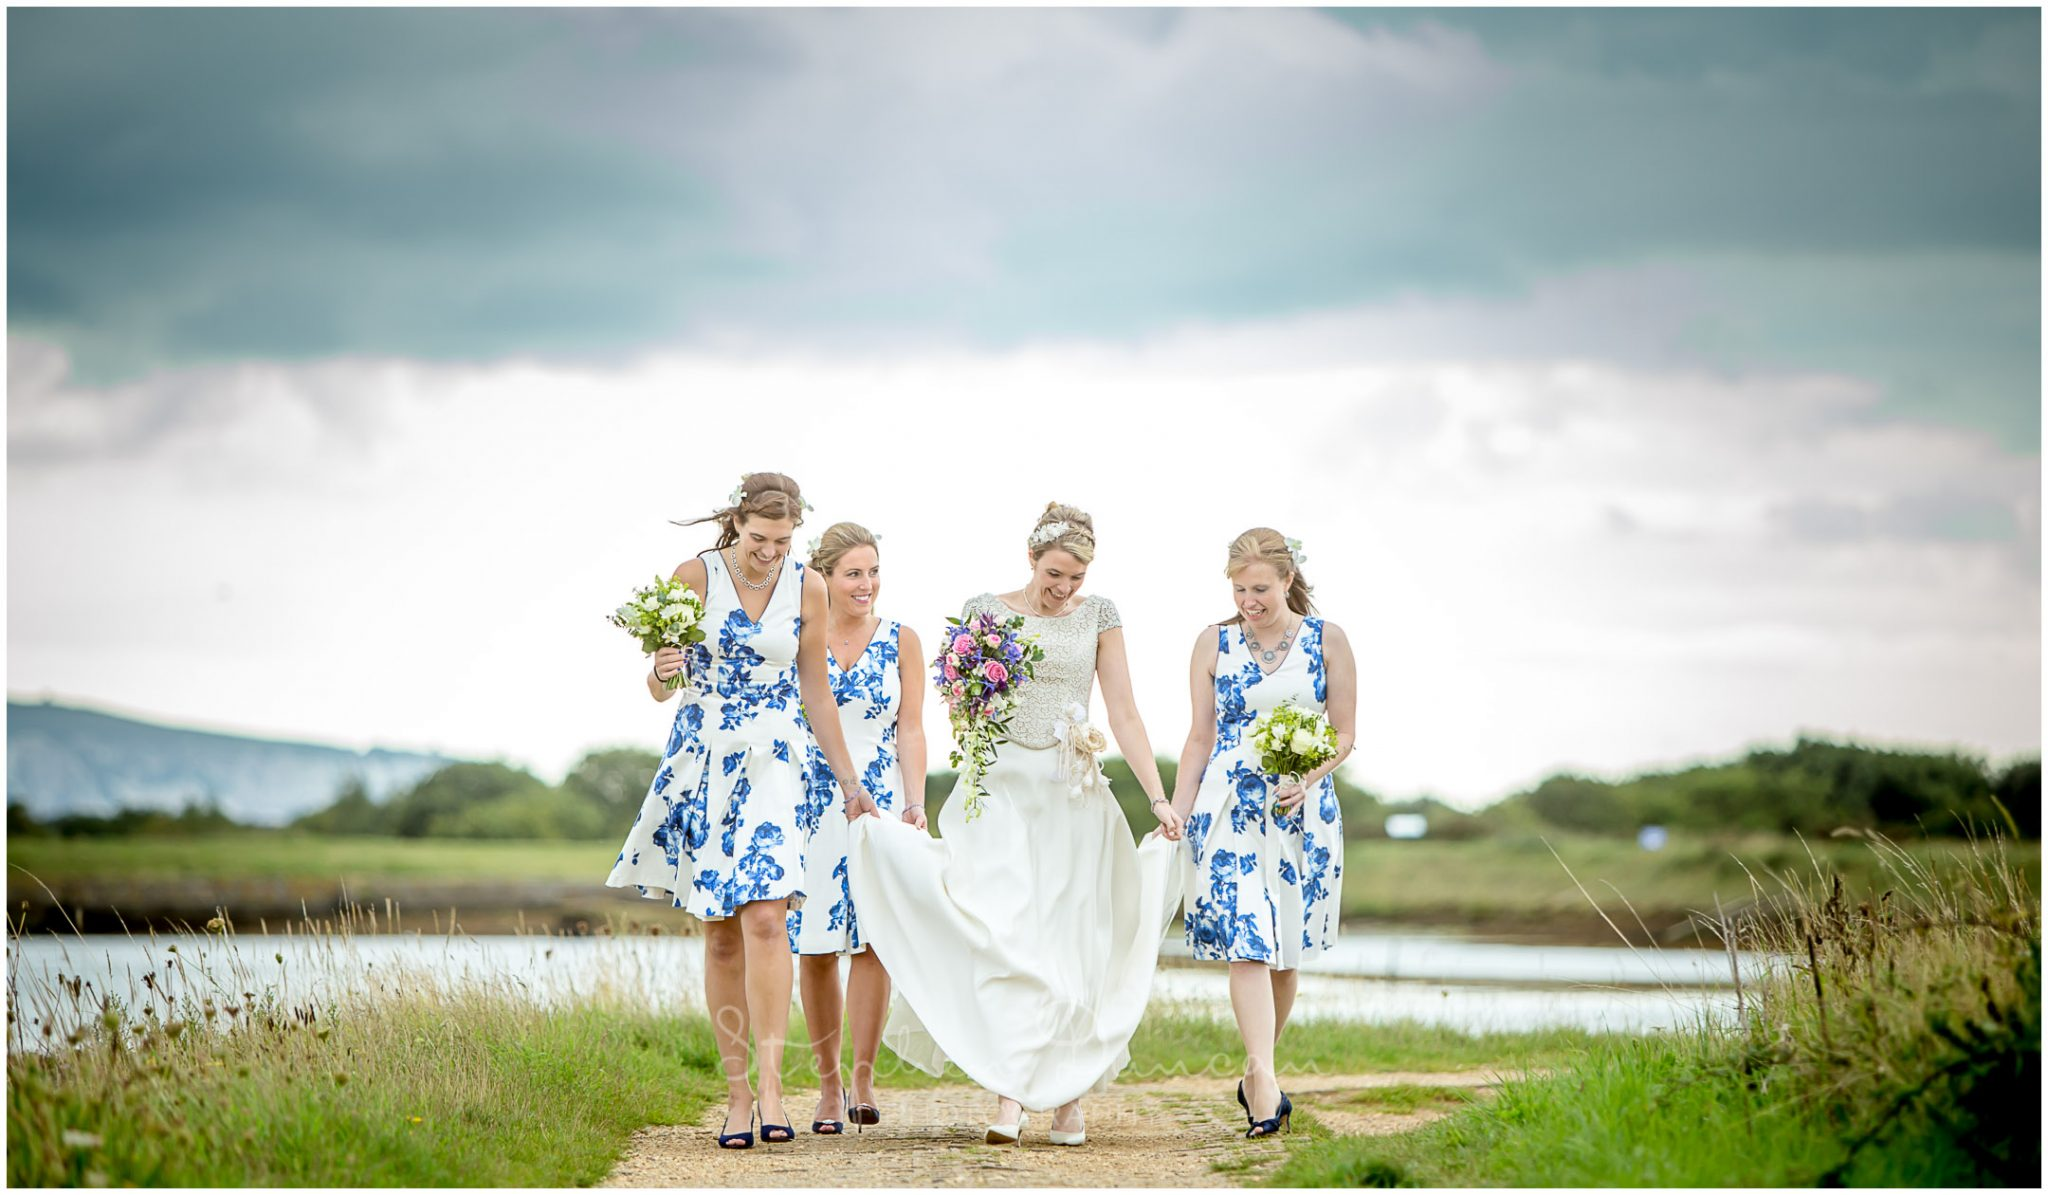 Lymington wedding photography bride walking with bridesmaids